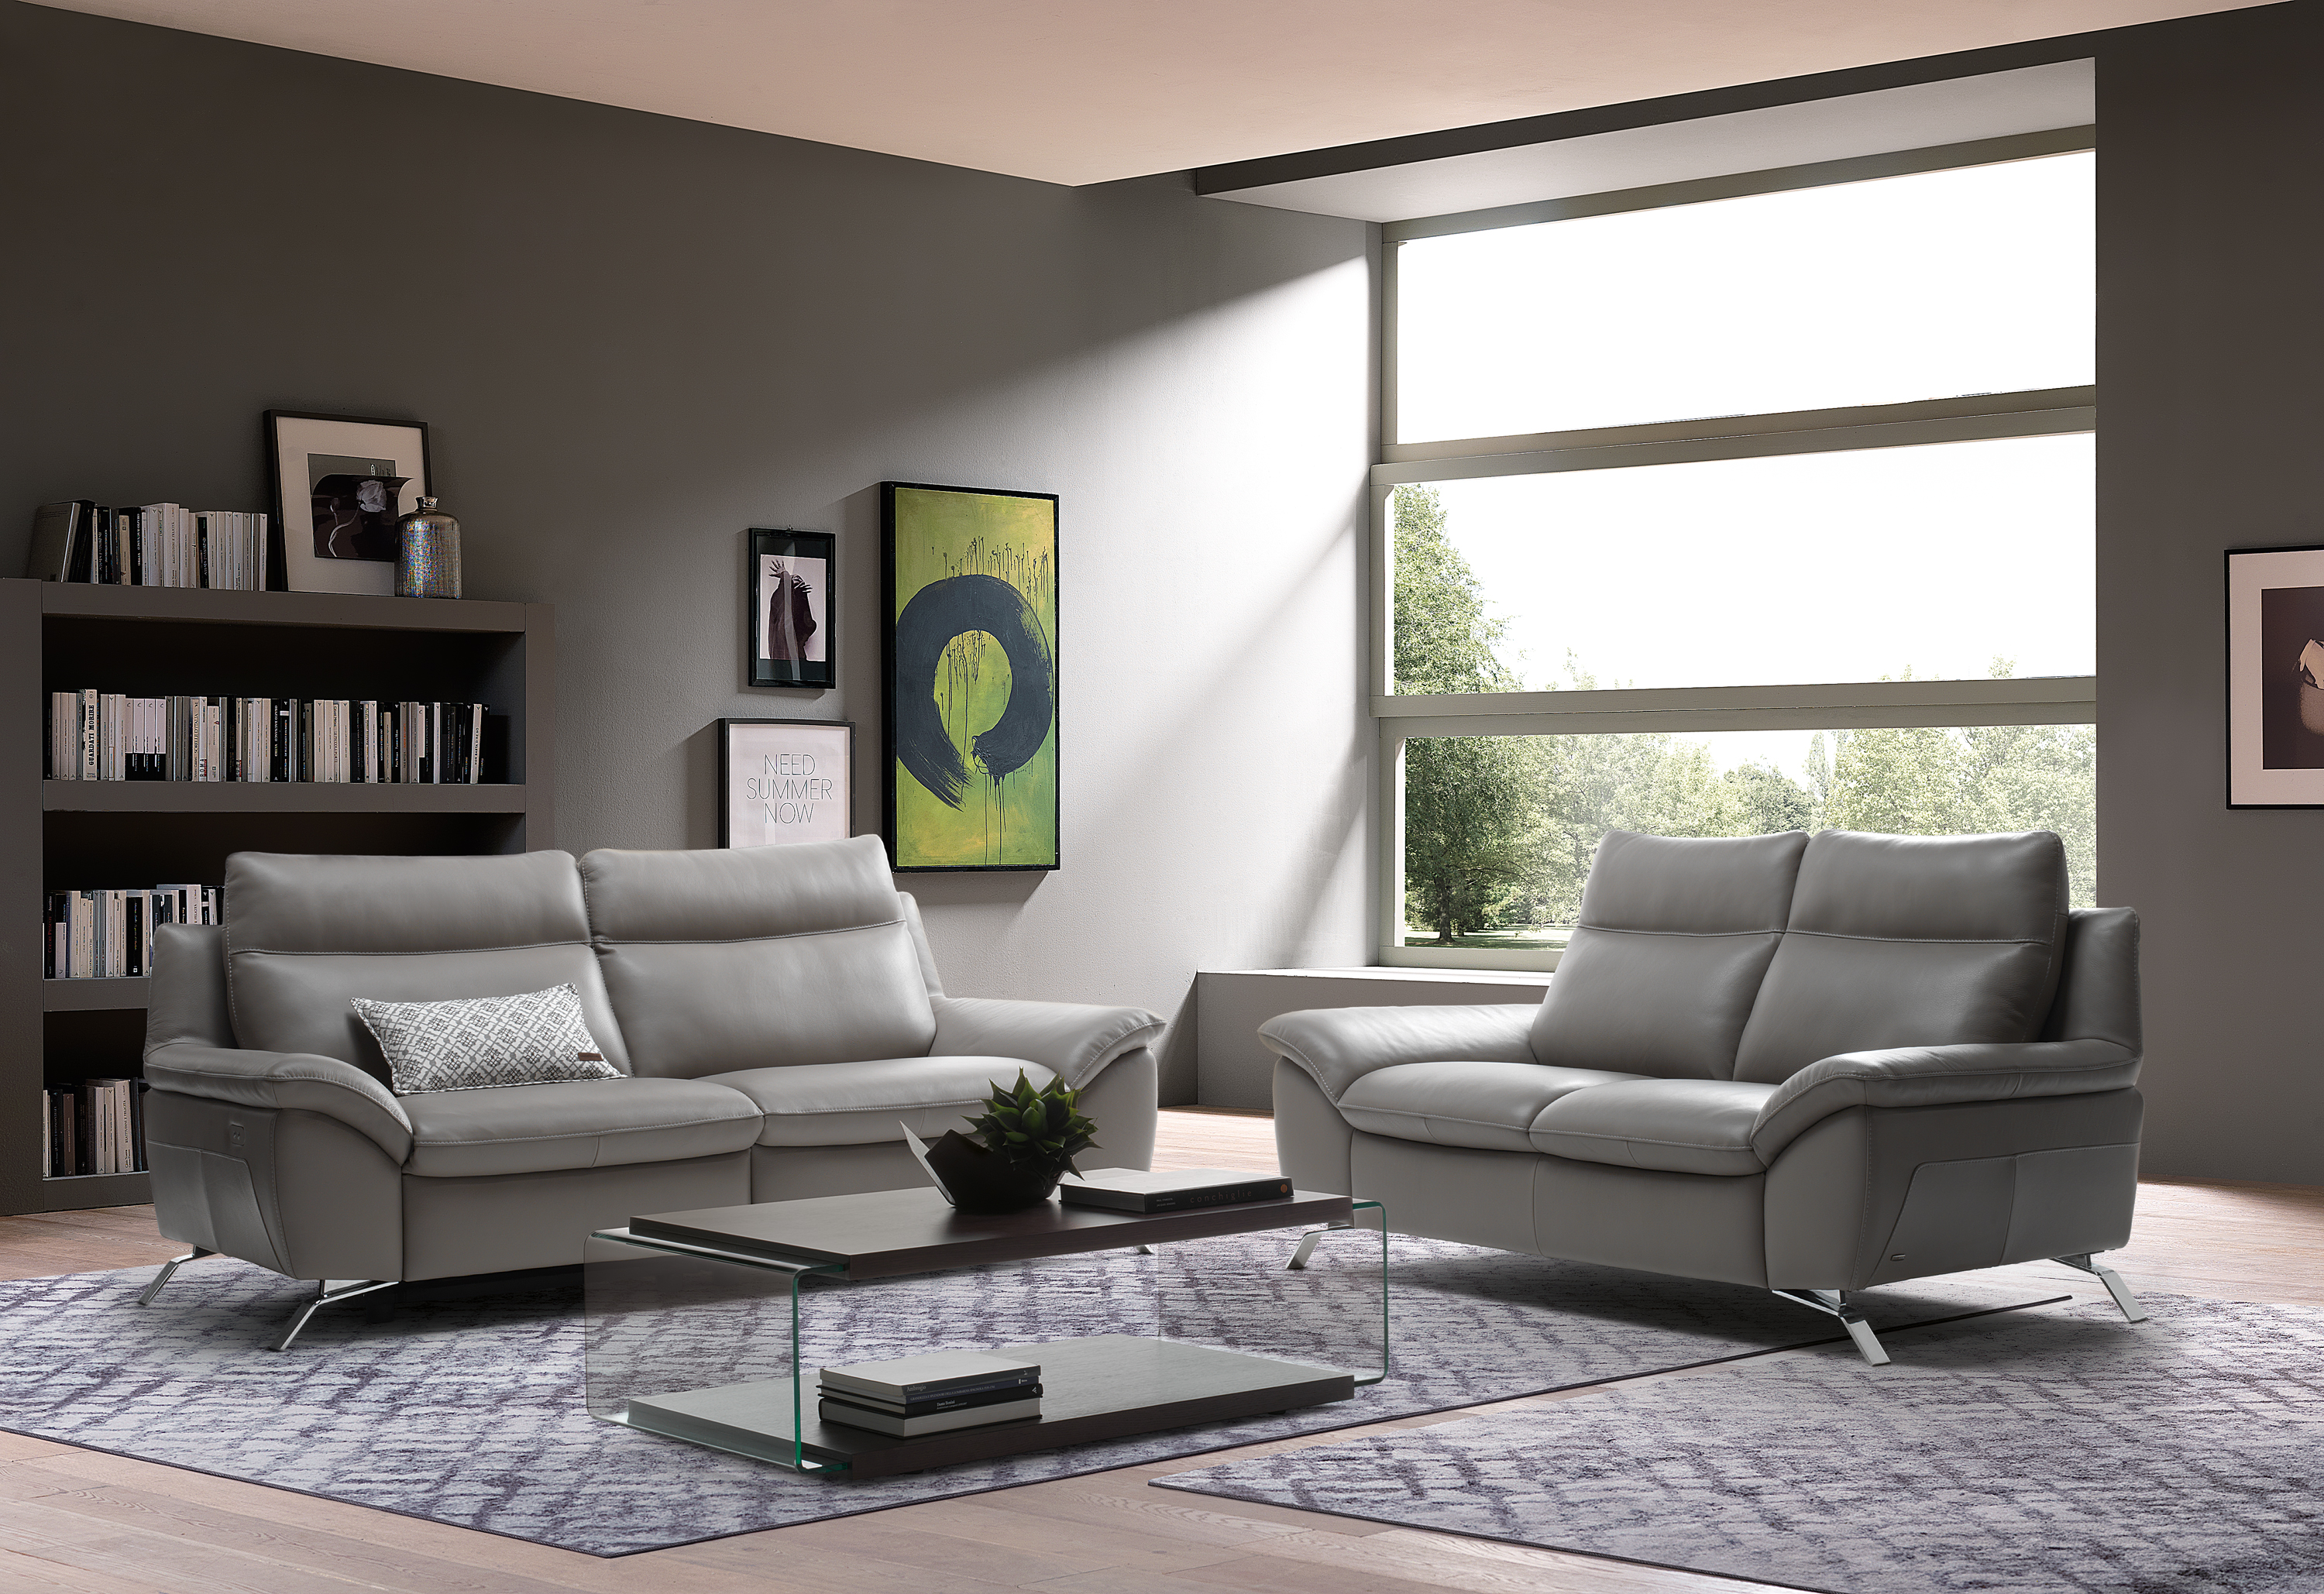 Living room milano home furnishings for Home decor furnishing